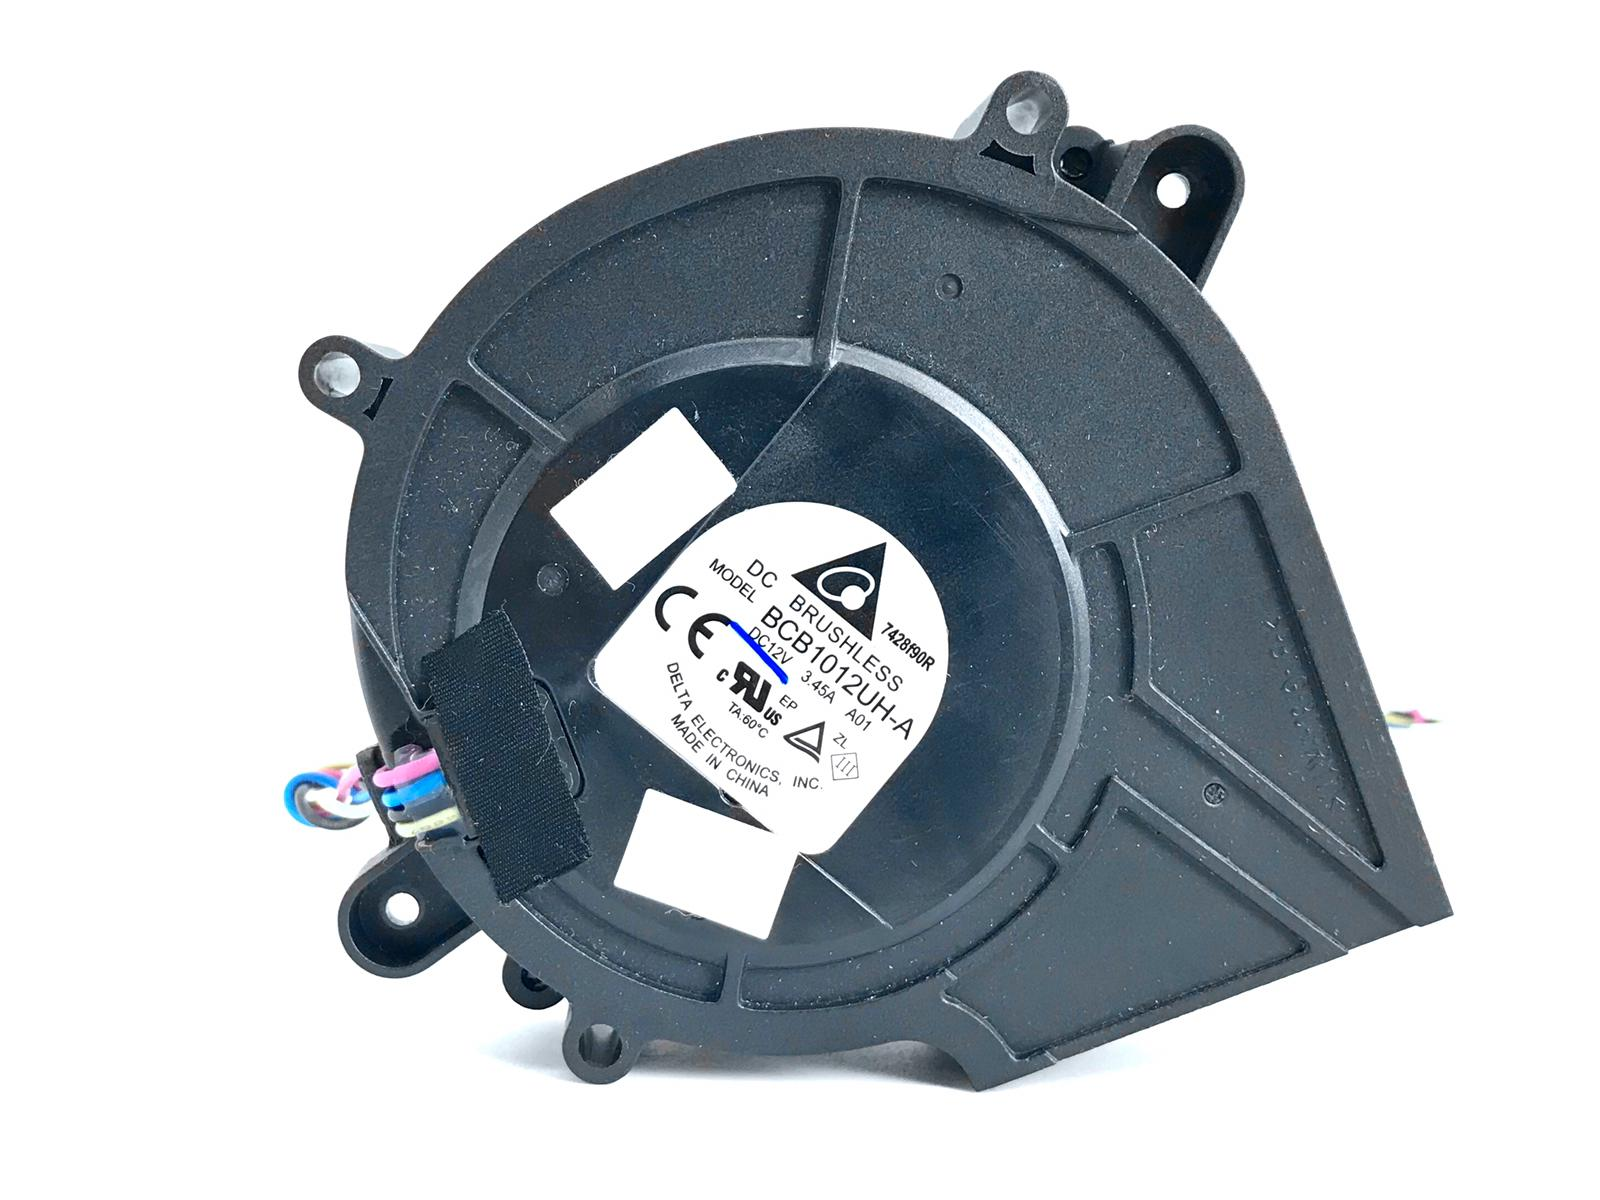 Blower Fan and Wheels Neato Botvac D Series